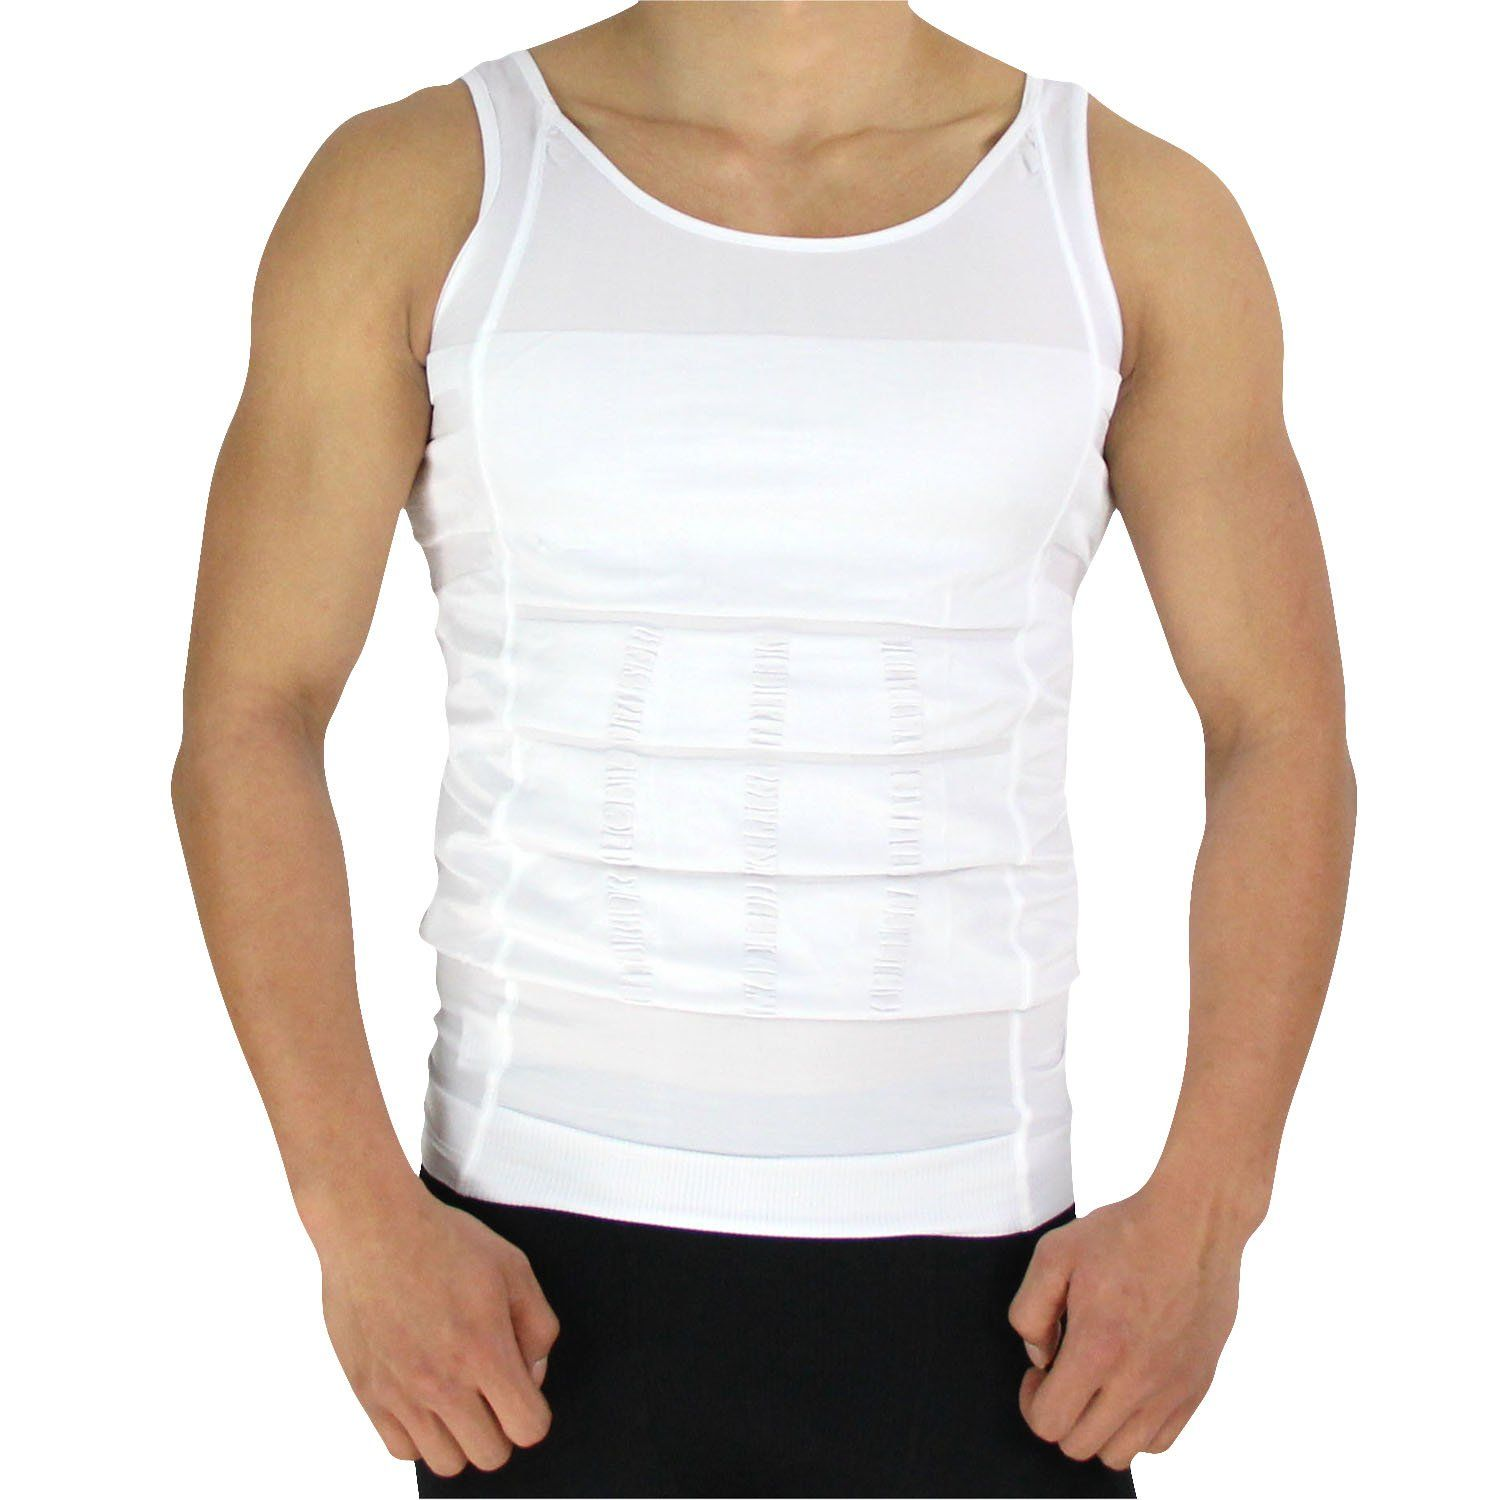 b914daa65e3 H oter Mens Slimming Body Shaper Vest Shirt Abs Abdomen Slim